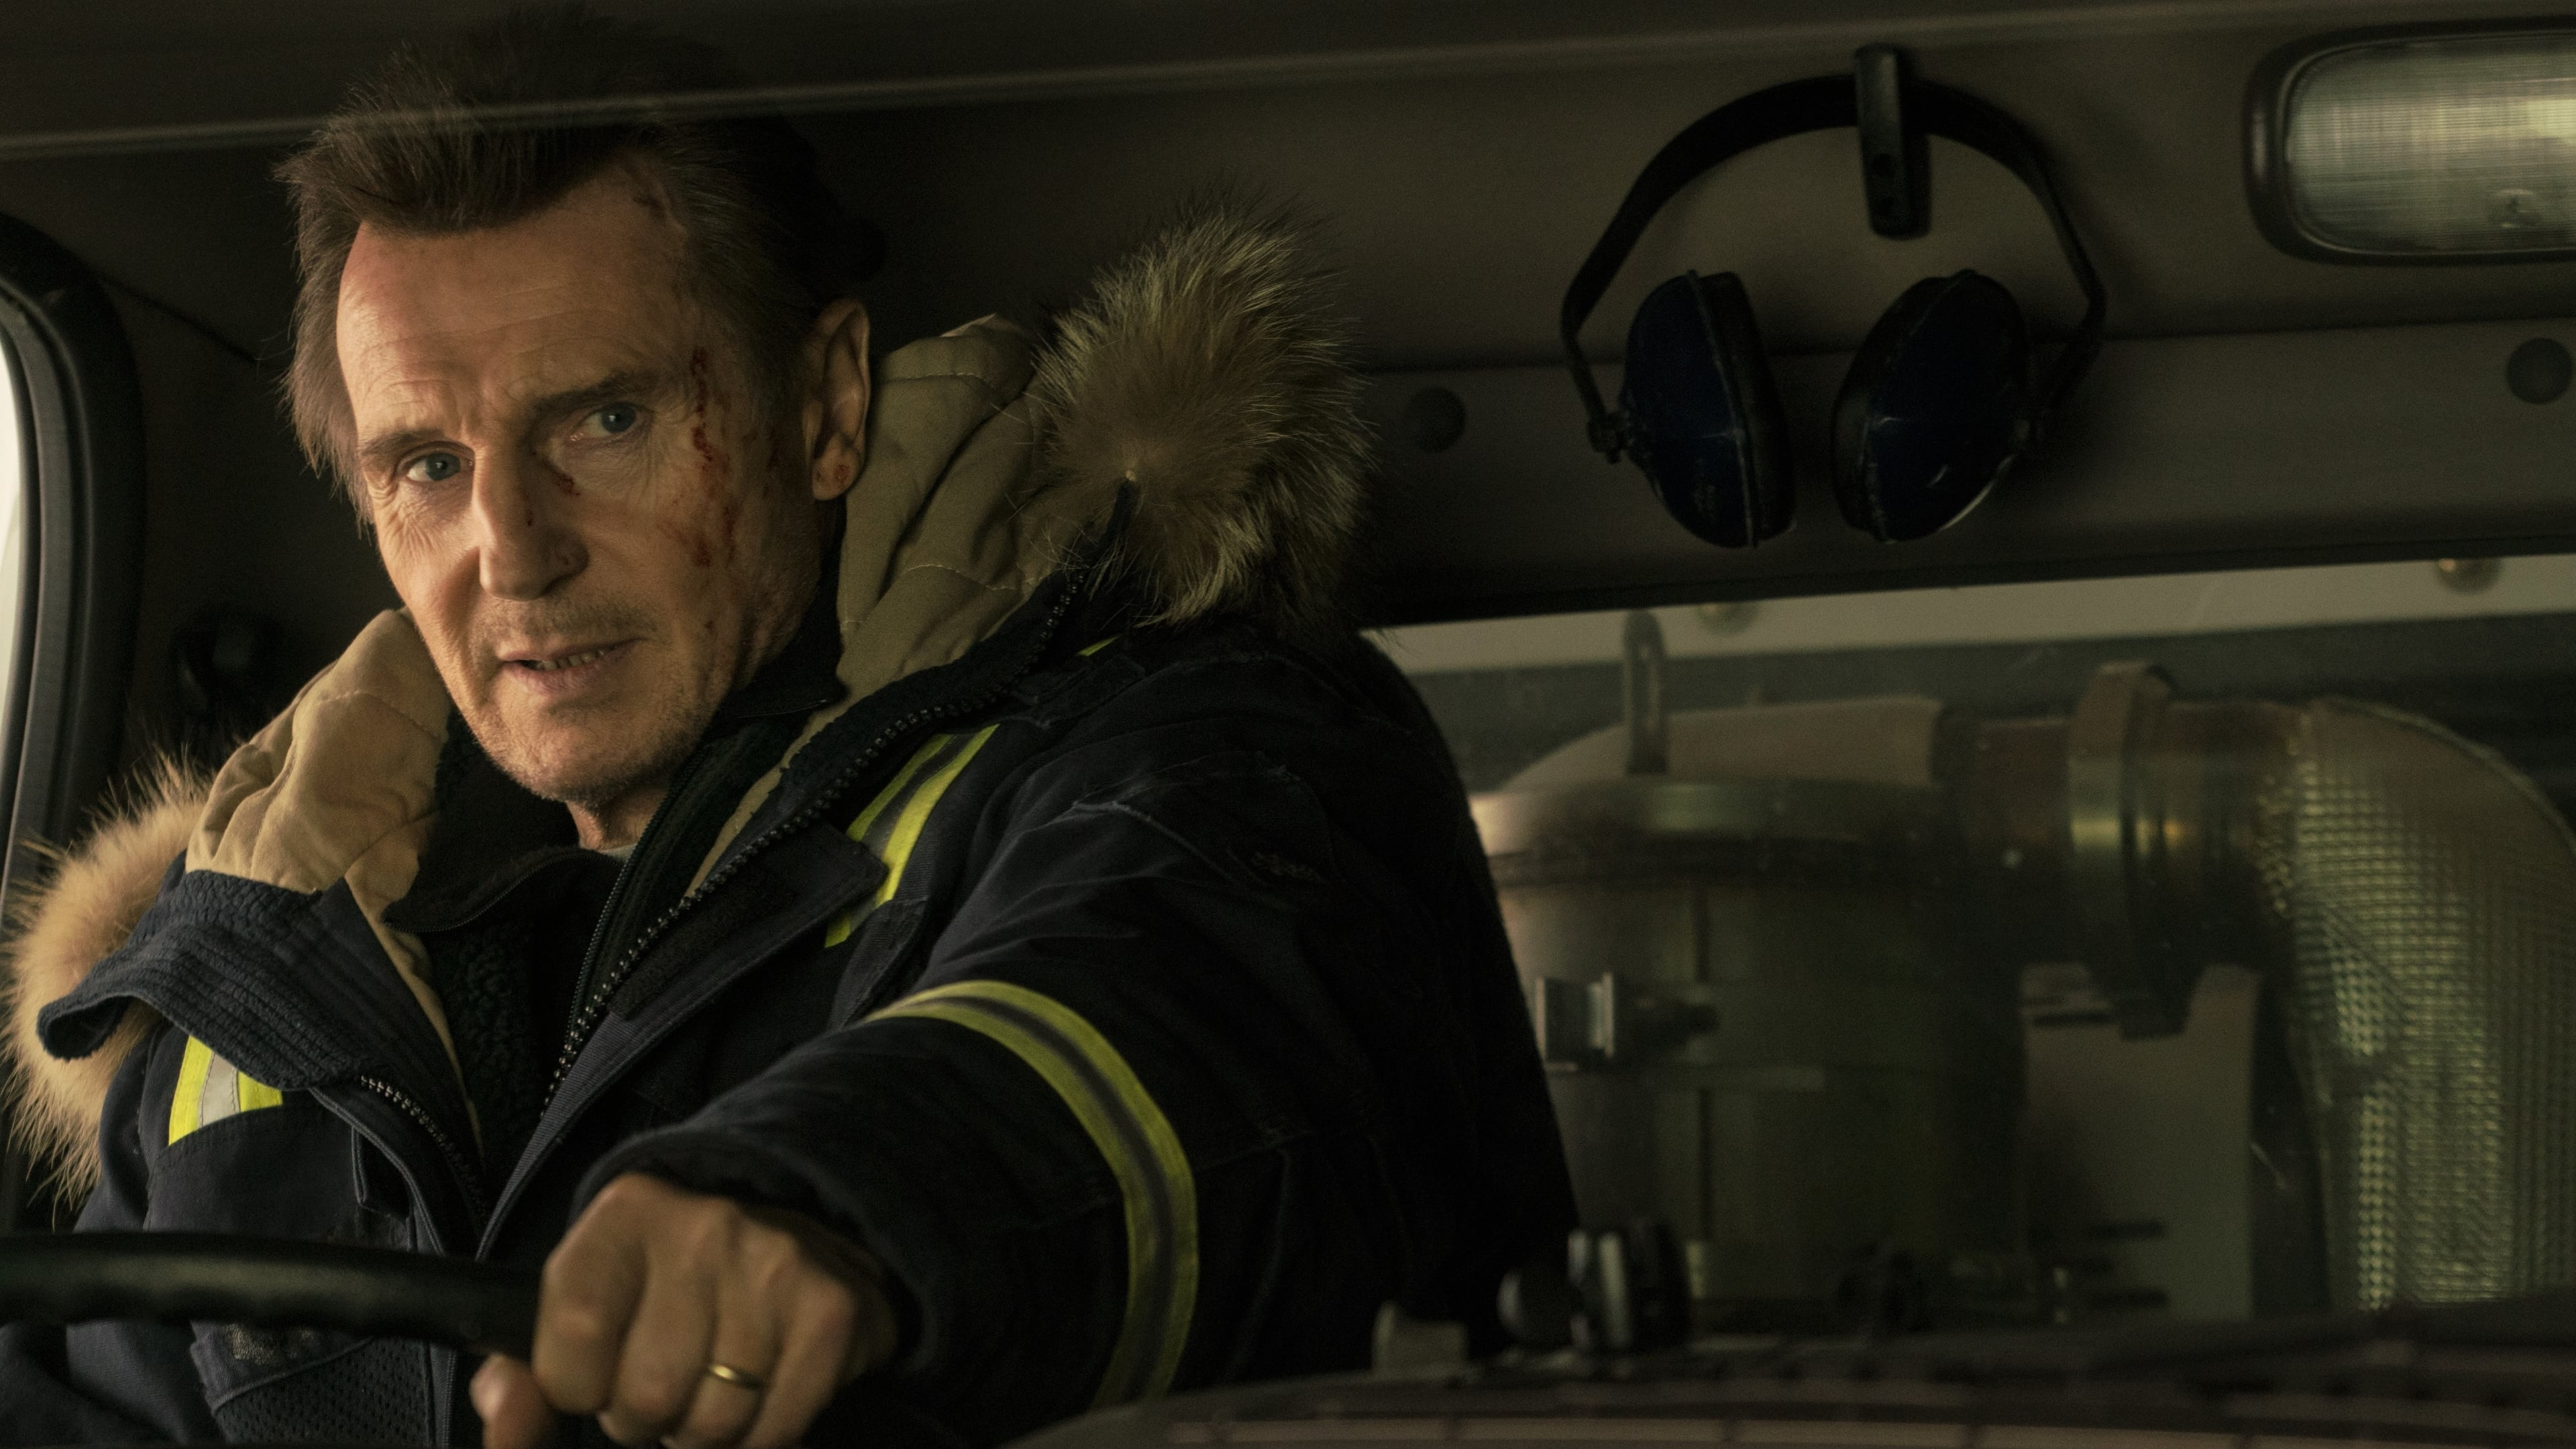 Liam Neeson as Nelson Coxman in Cold Pursuit (2019)